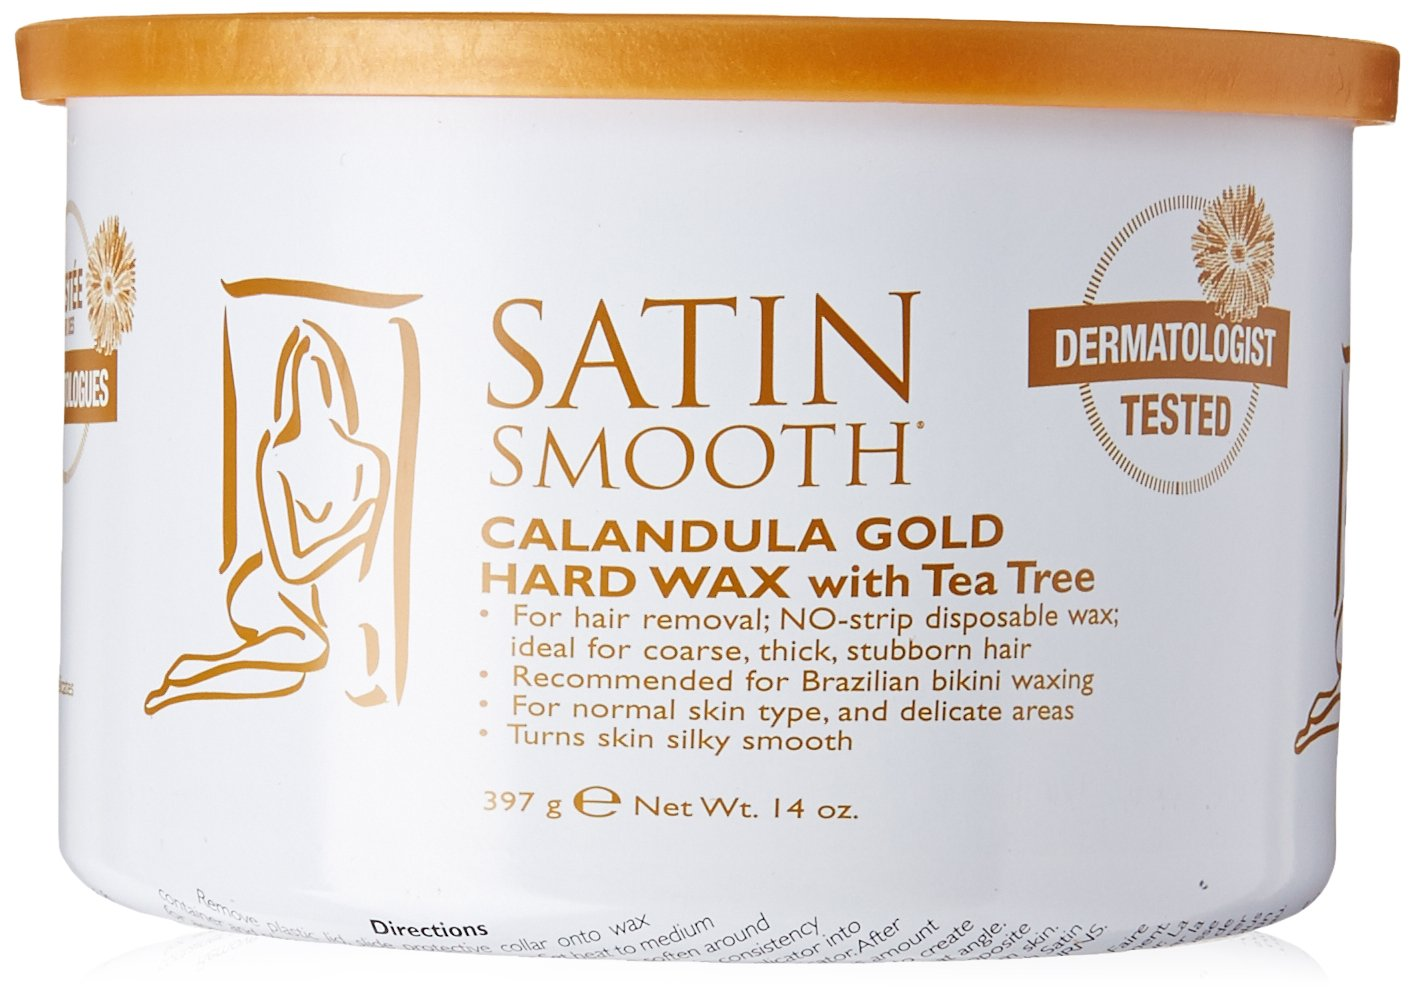 Satin Smooth Calendula Gold Hard Wax with Tea Tree Oil, 14 Ounce